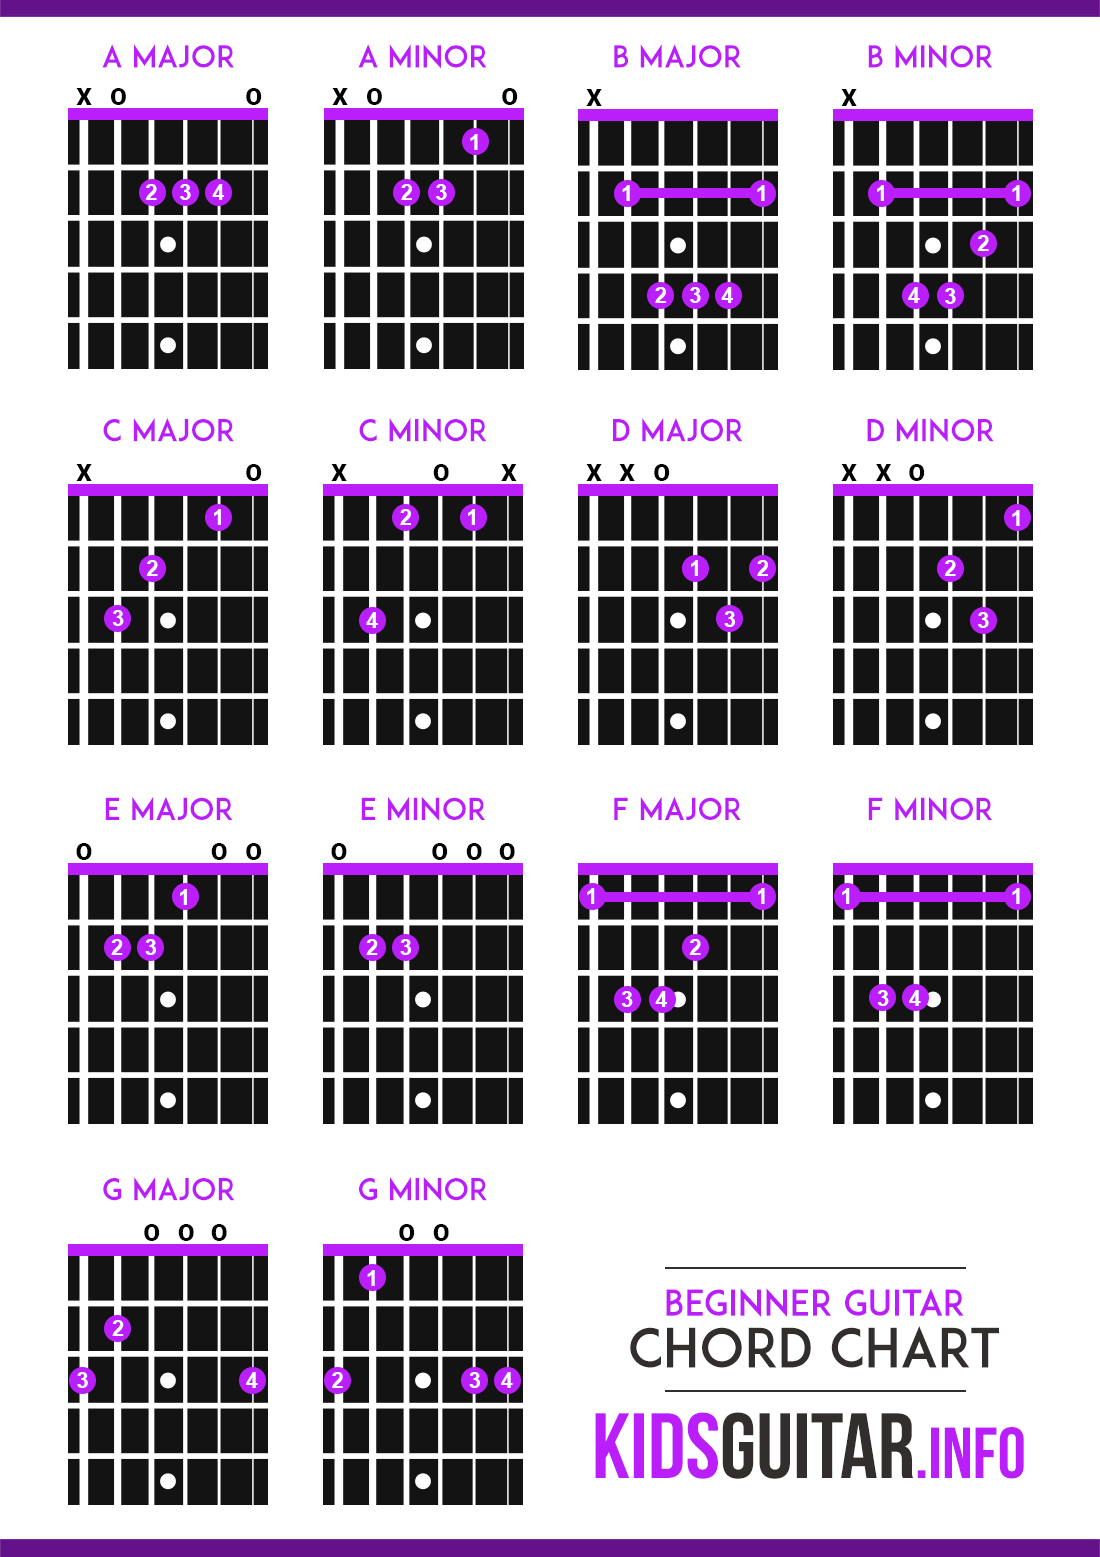 Beginner Guitar Chords Beginner Guitar Chords Lesson With Sound And Printable Chart